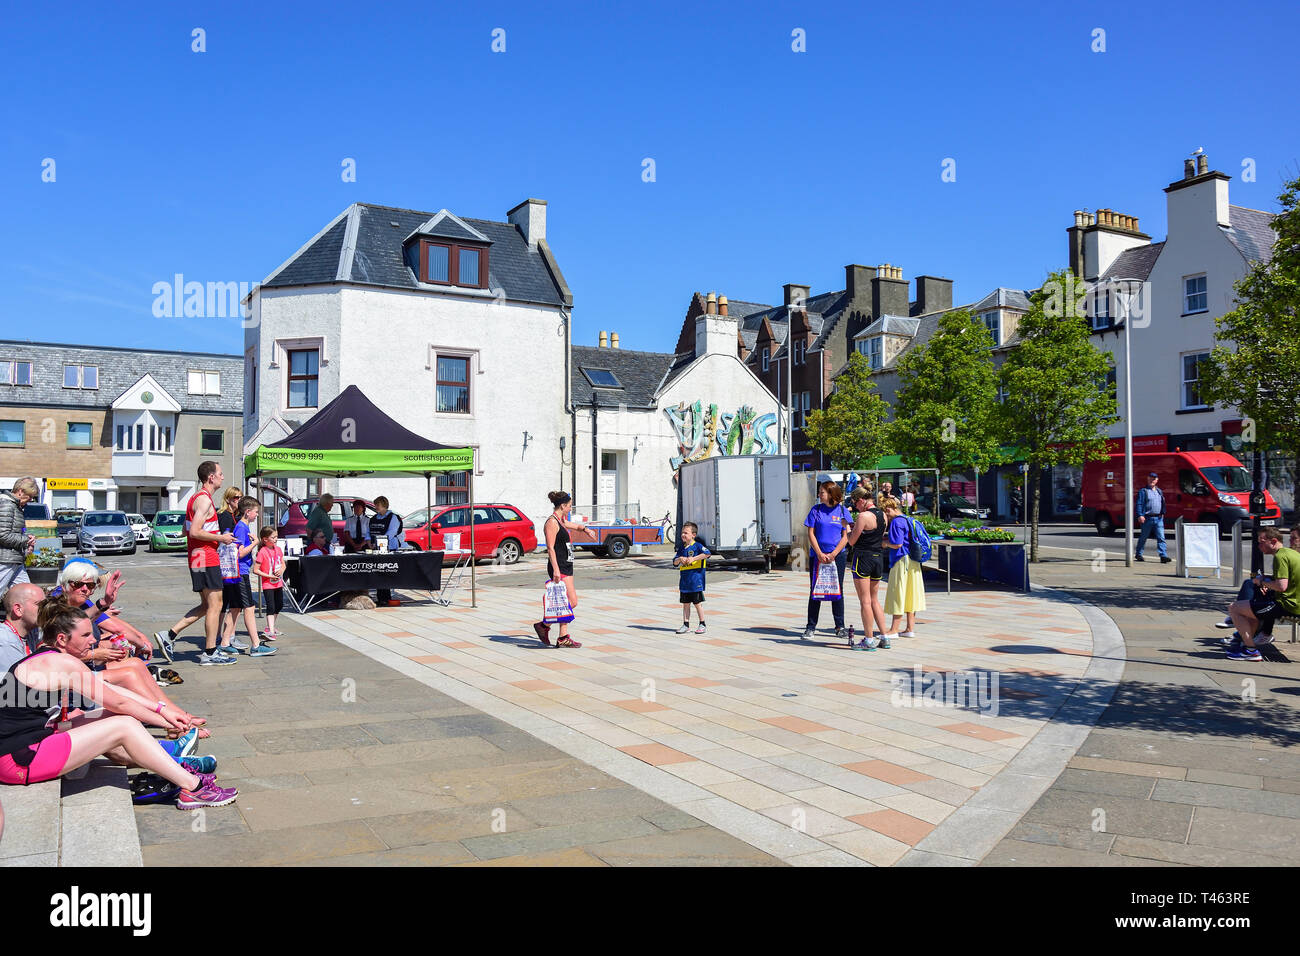 Cromwell Street Quay, Stornoway, Isle of Lewis, Outer Hebrides, Na h-Eileanan Siar, Scotland, United Kingdom - Stock Image